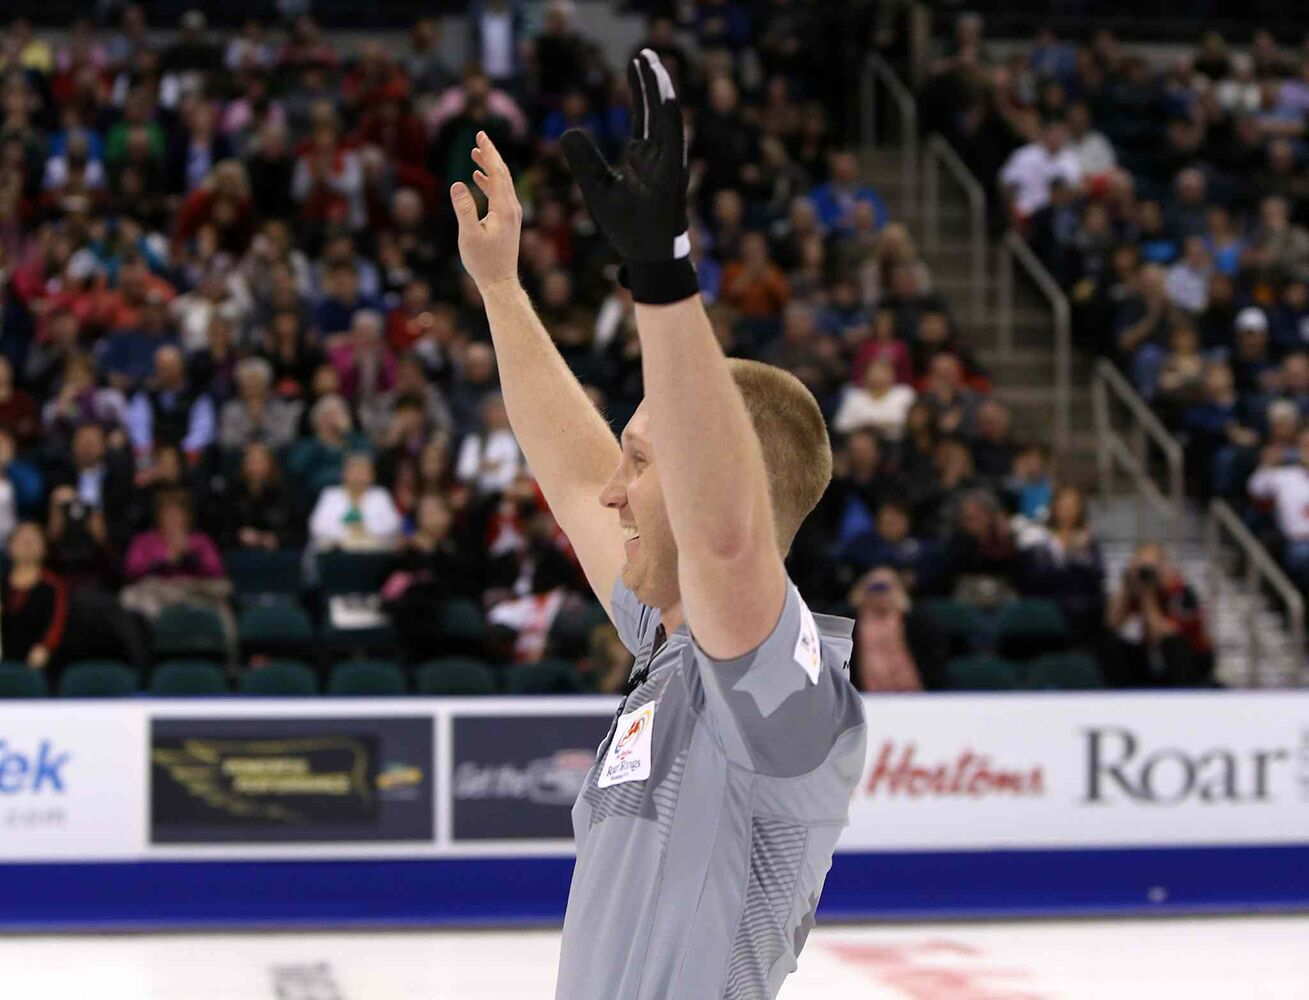 Skip Brad Jacobs celebrates after defeating John Morris' team. (Jason Halstead / Winnipeg Free Press)